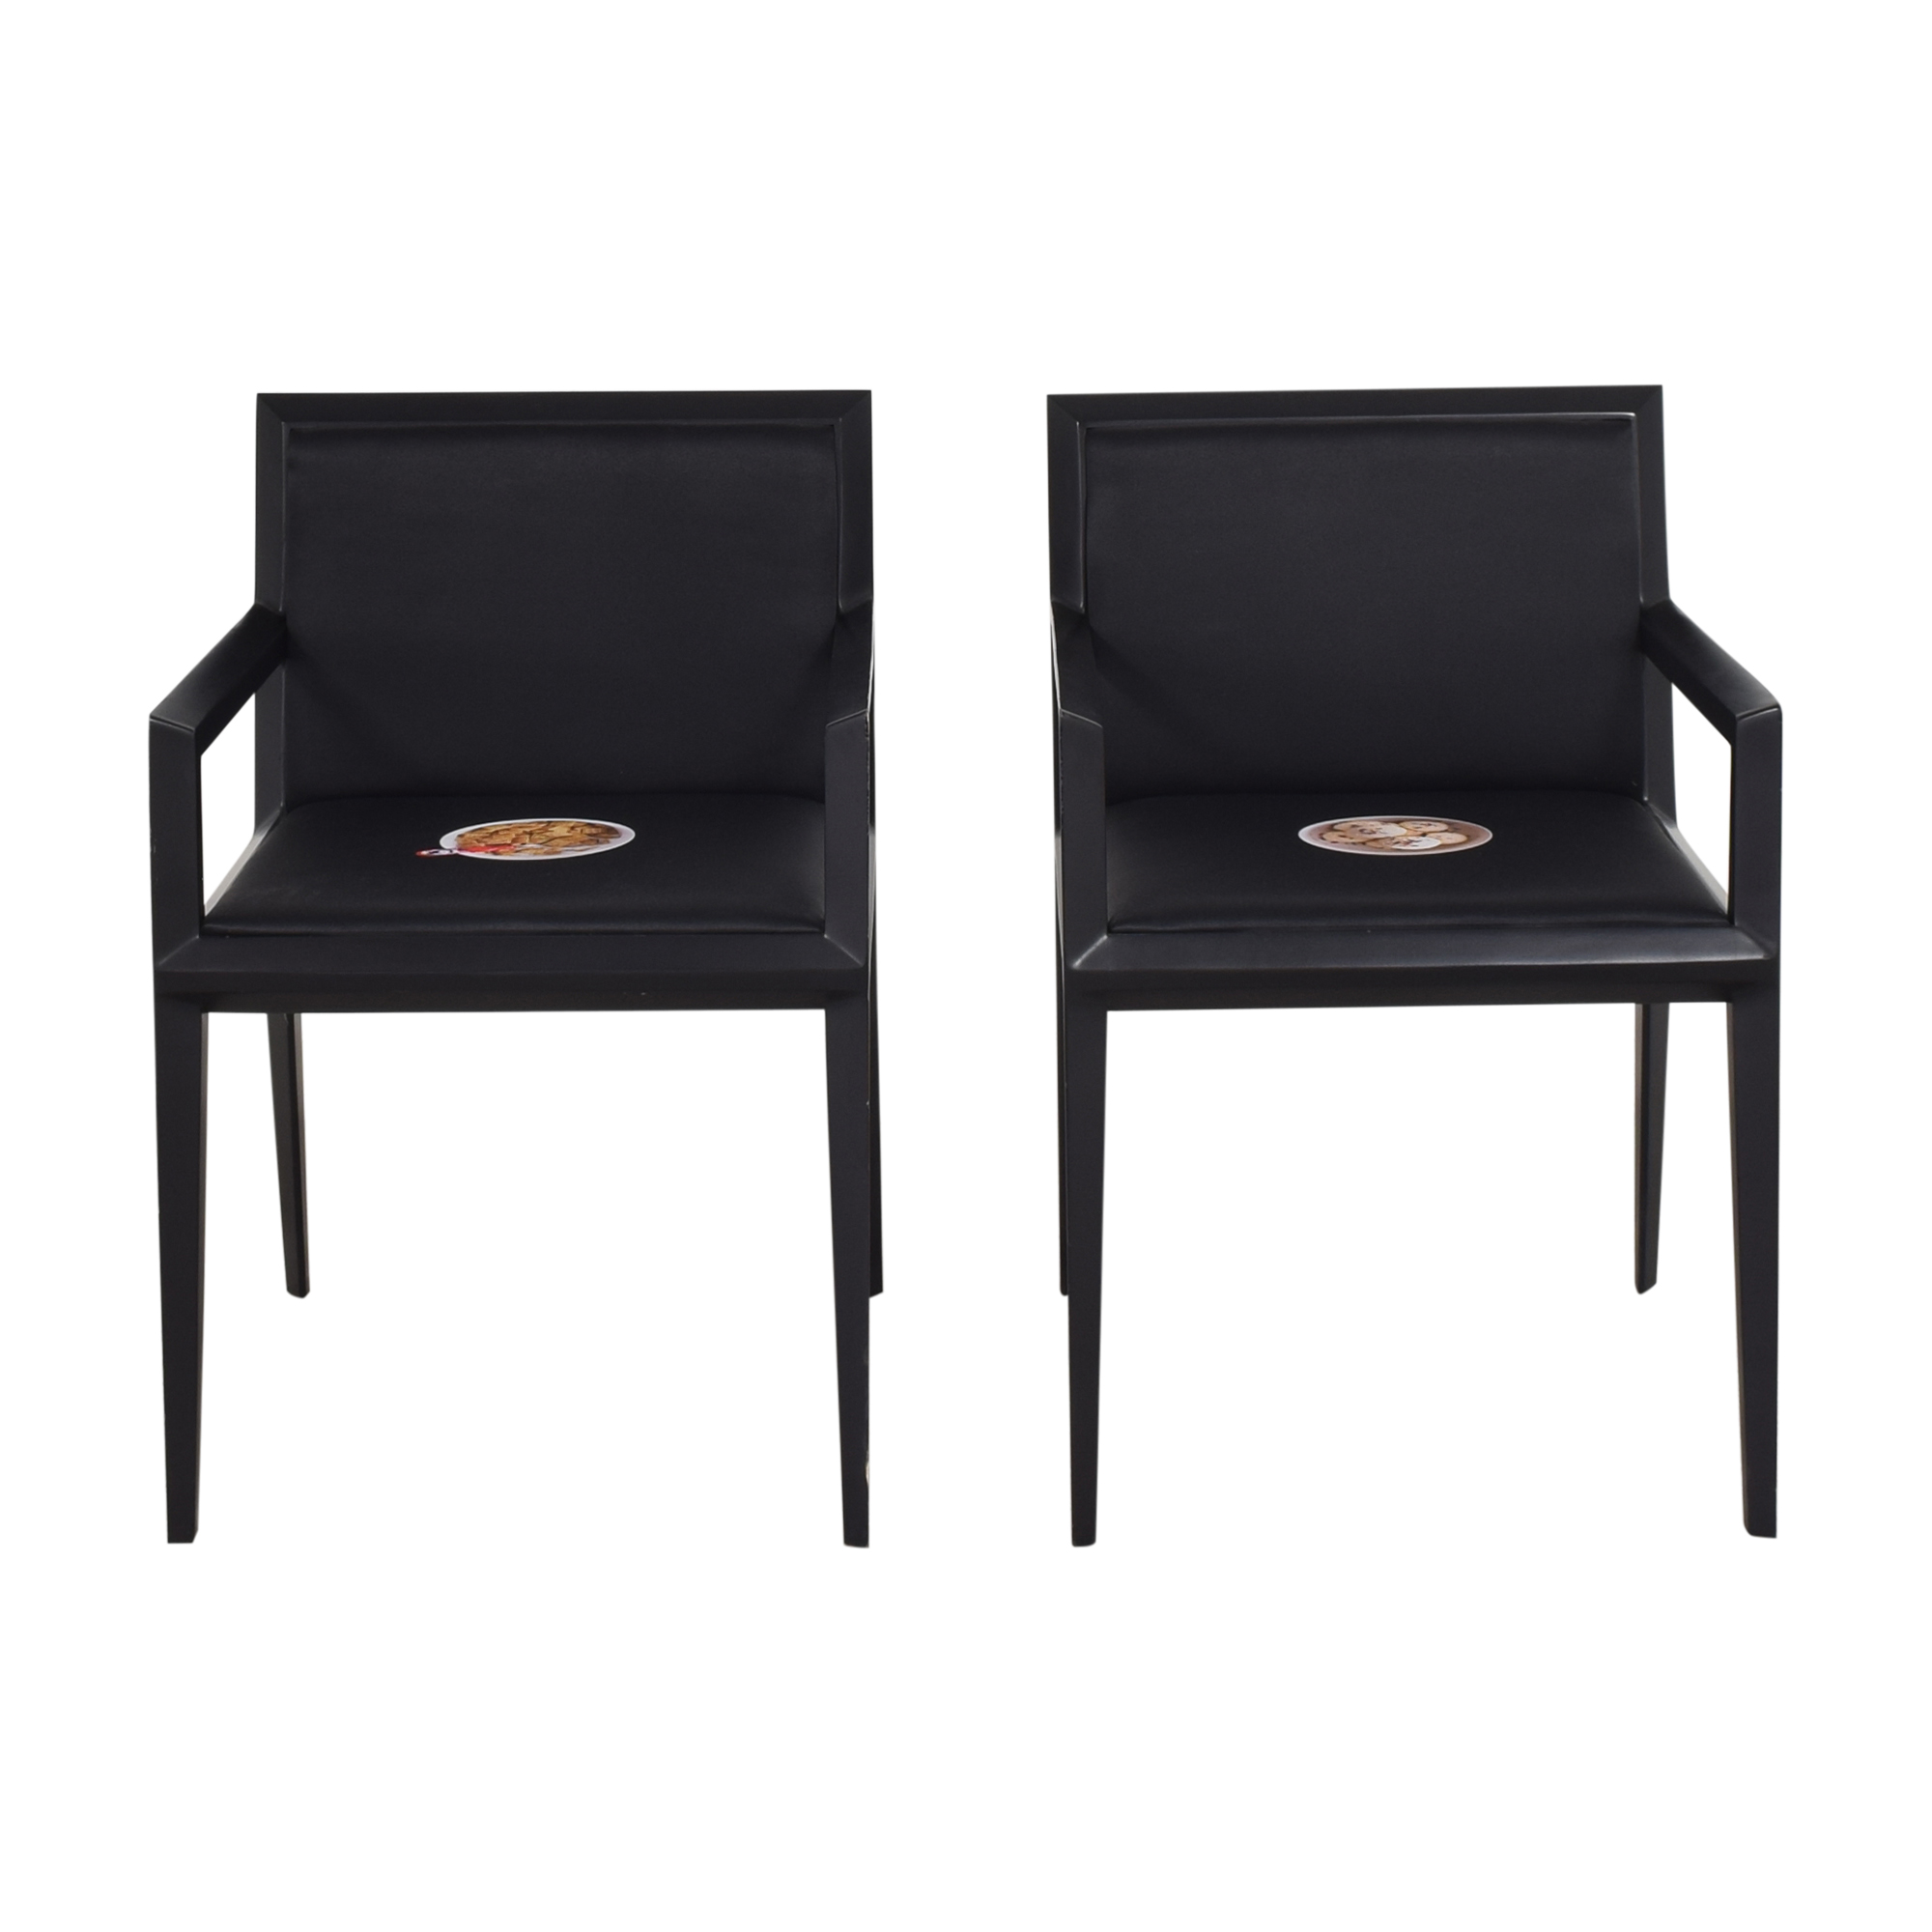 Bernhardt Whisper Arm Chairs / Dining Chairs